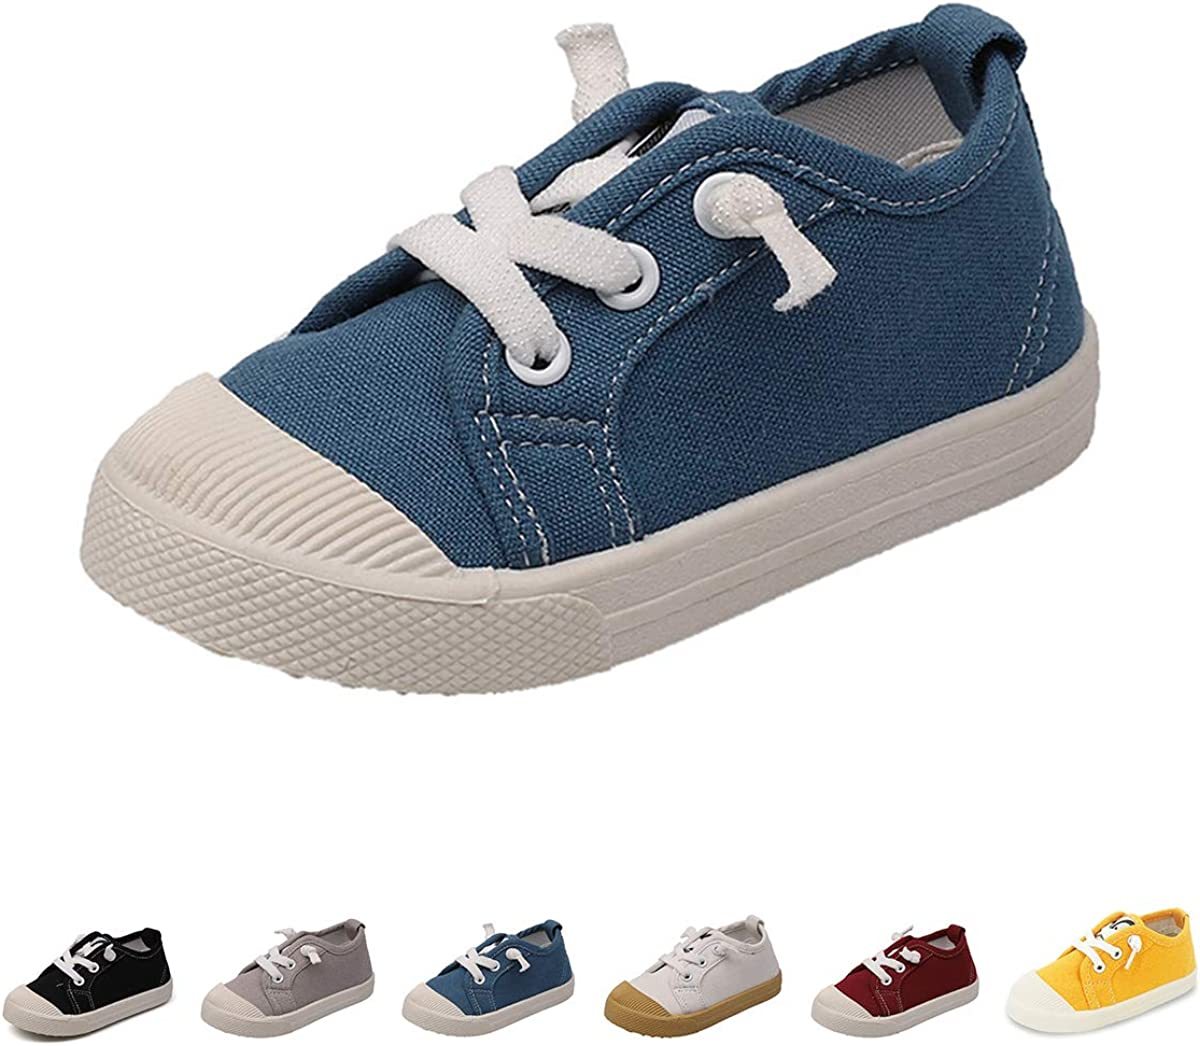 Fashion Sneakers Canvas Shoes